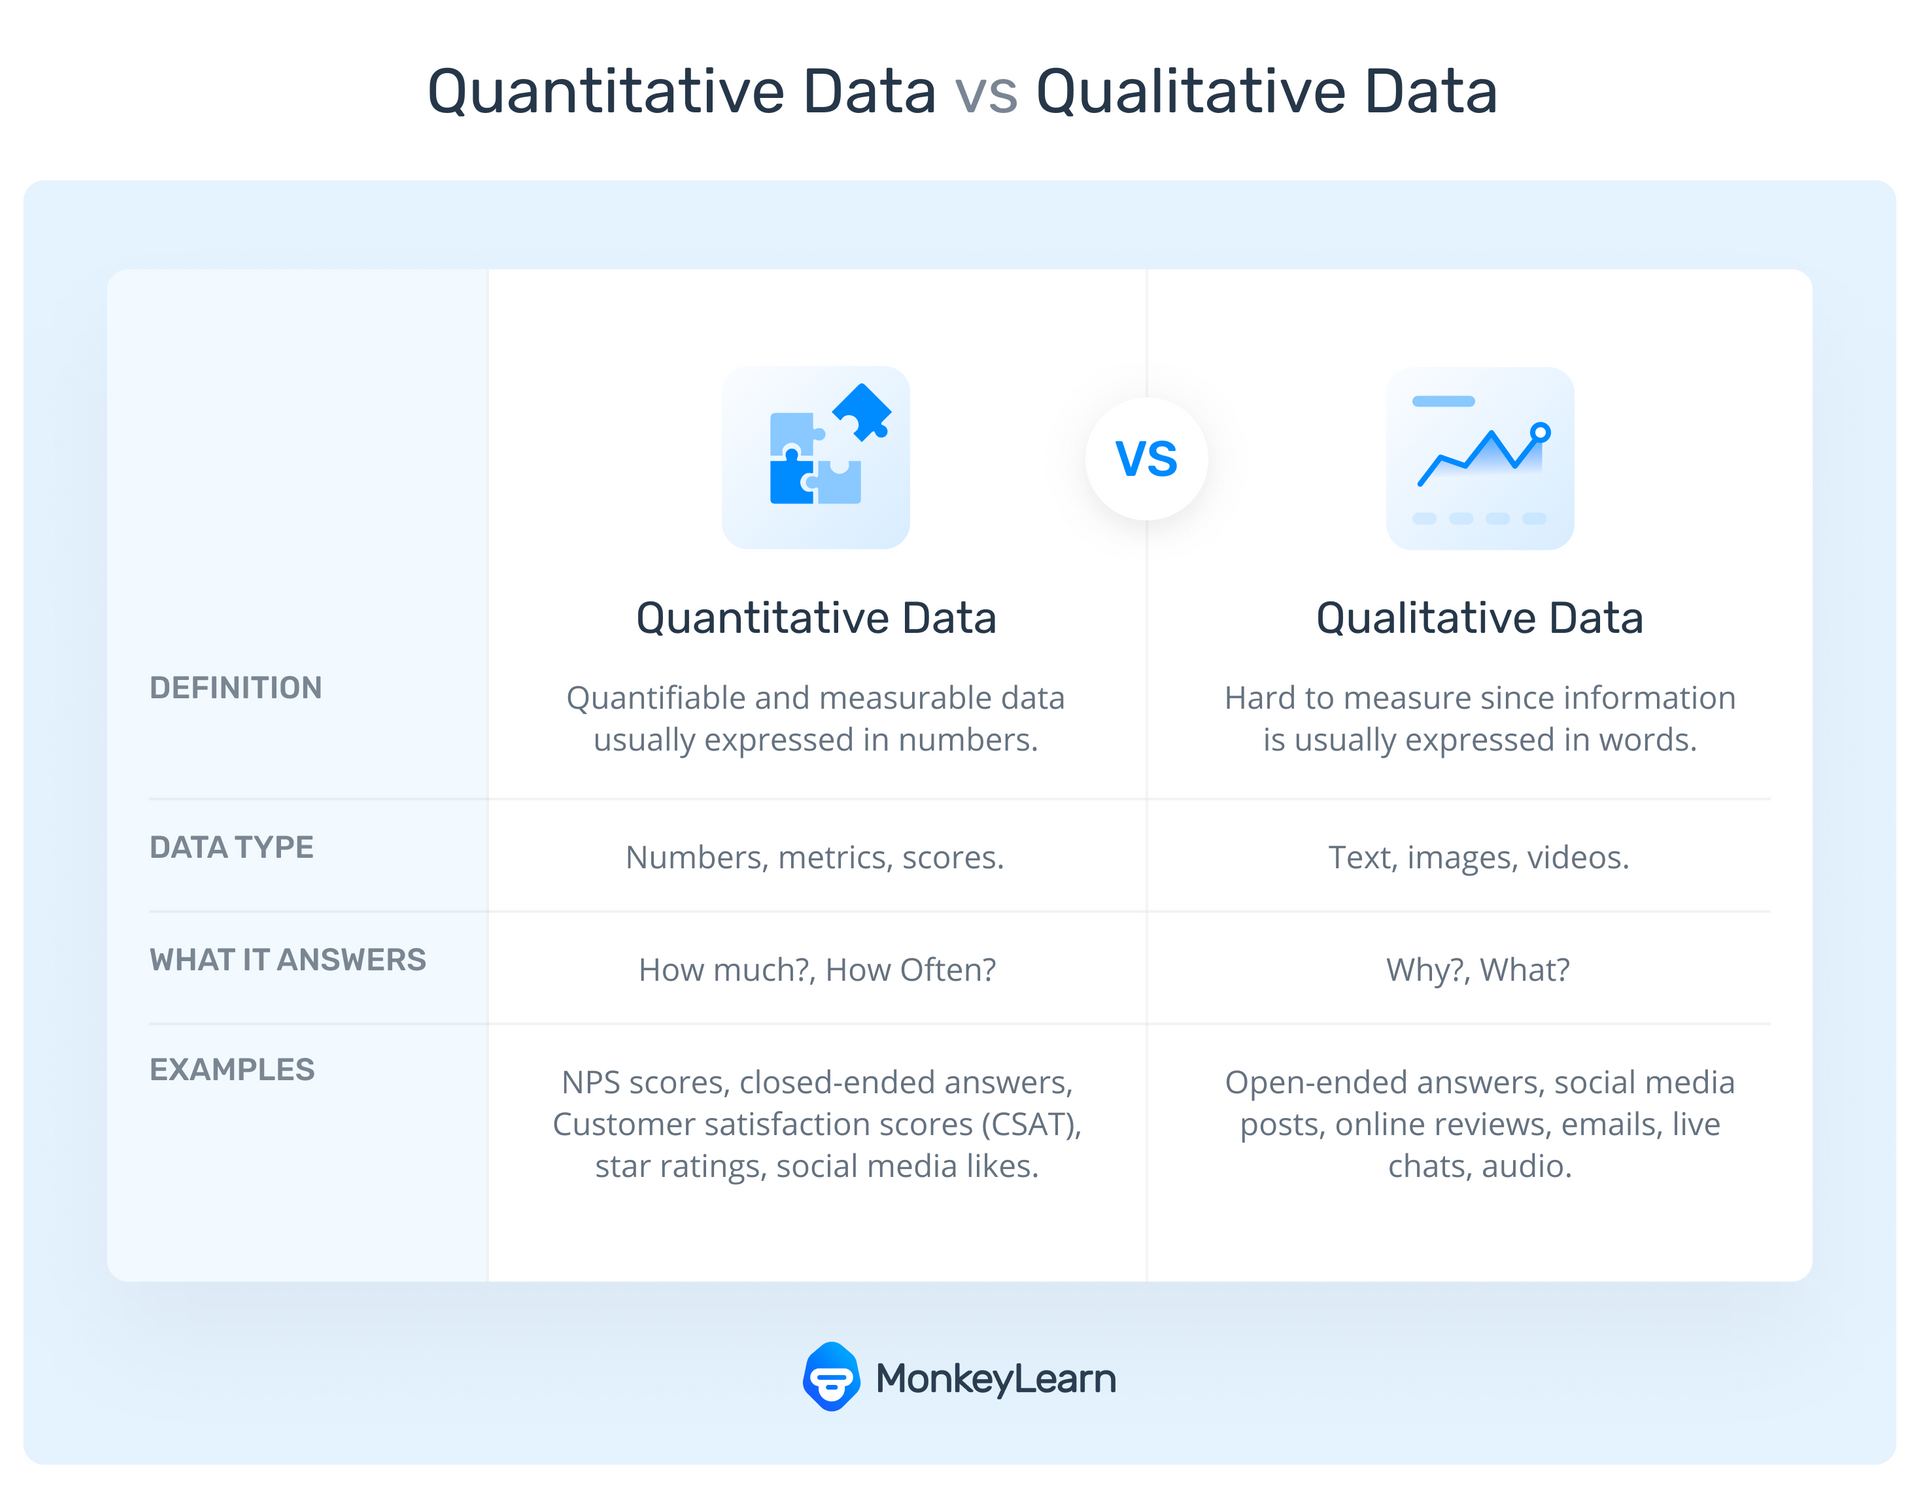 The differences between qualitative and quantitative data, including a definition, types of data, what it answers, and examples of both data types.